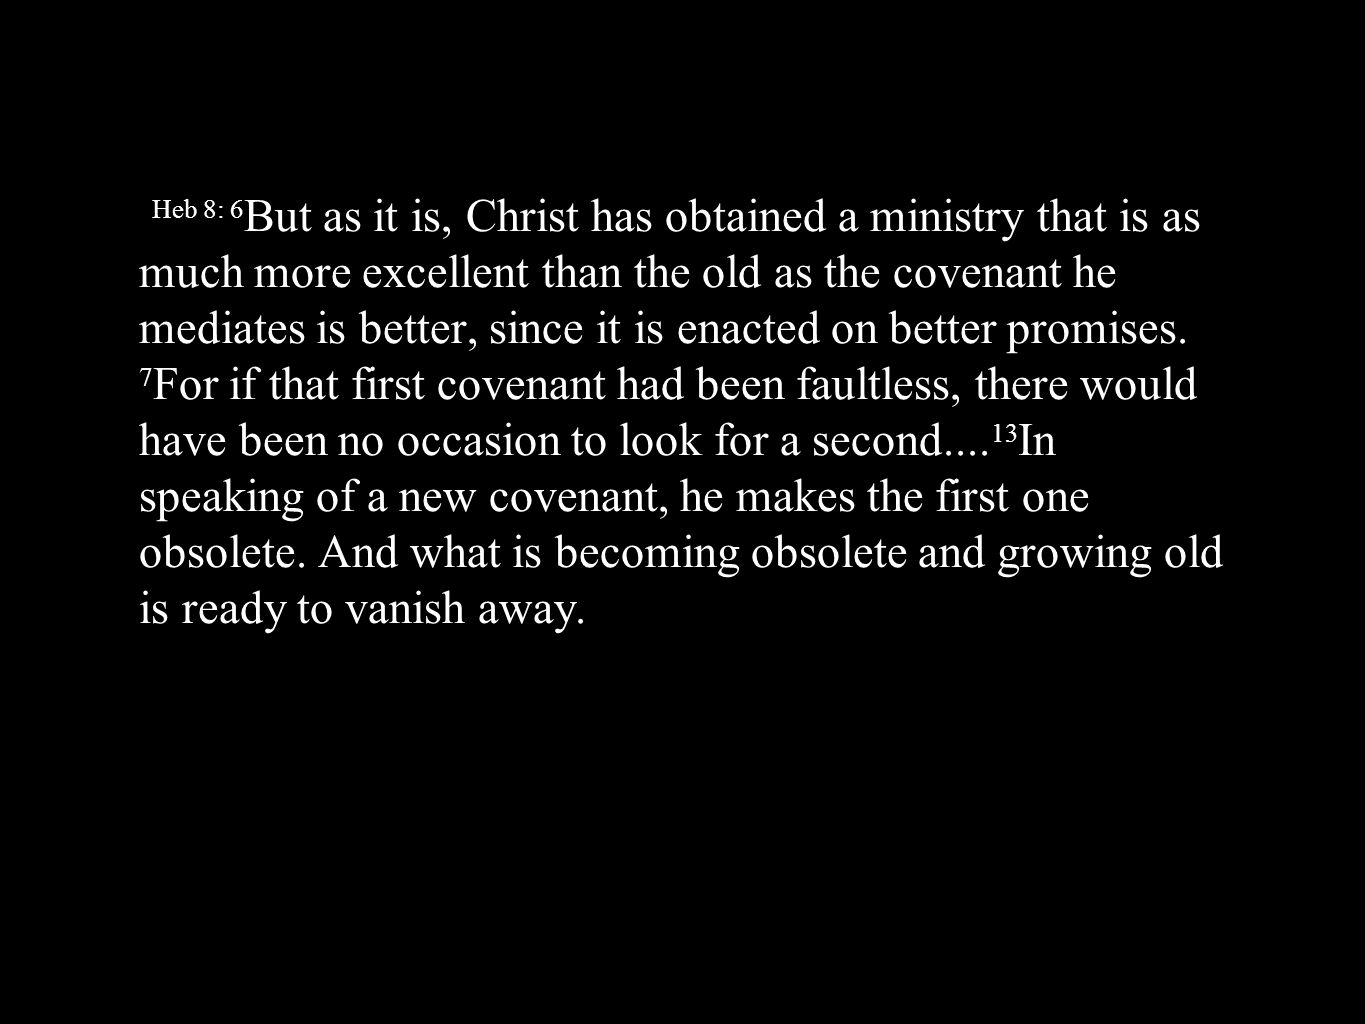 Heb 8: 6But as it is, Christ has obtained a ministry that is as much more excellent than the old as the covenant he mediates is better, since it is enacted on better promises.